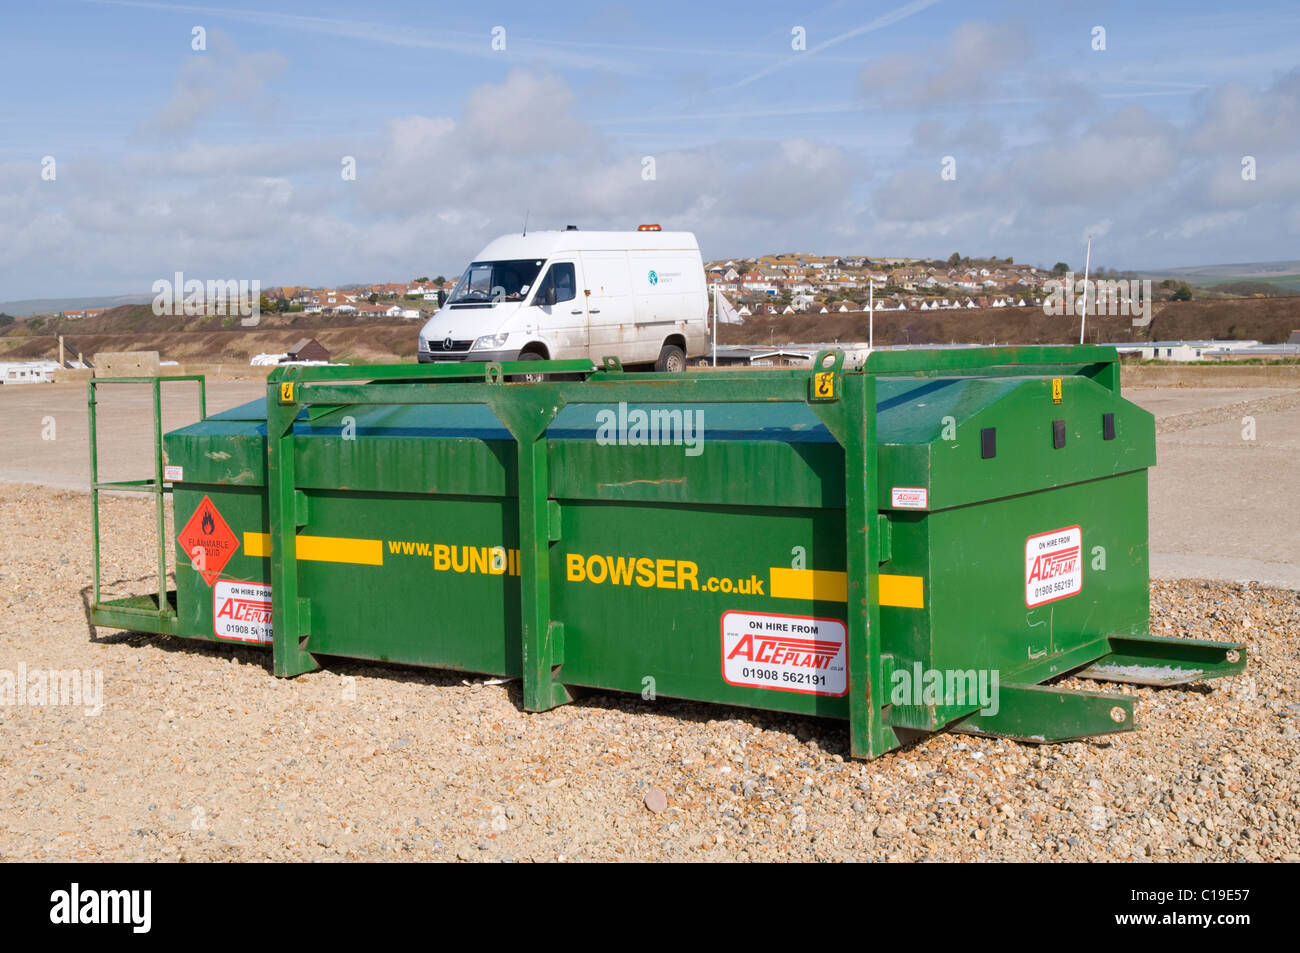 A Bunded Diesel Fuel Bowser used for refueling heavy plant on a beach at Seaford, East Sussex, UK - Stock Image